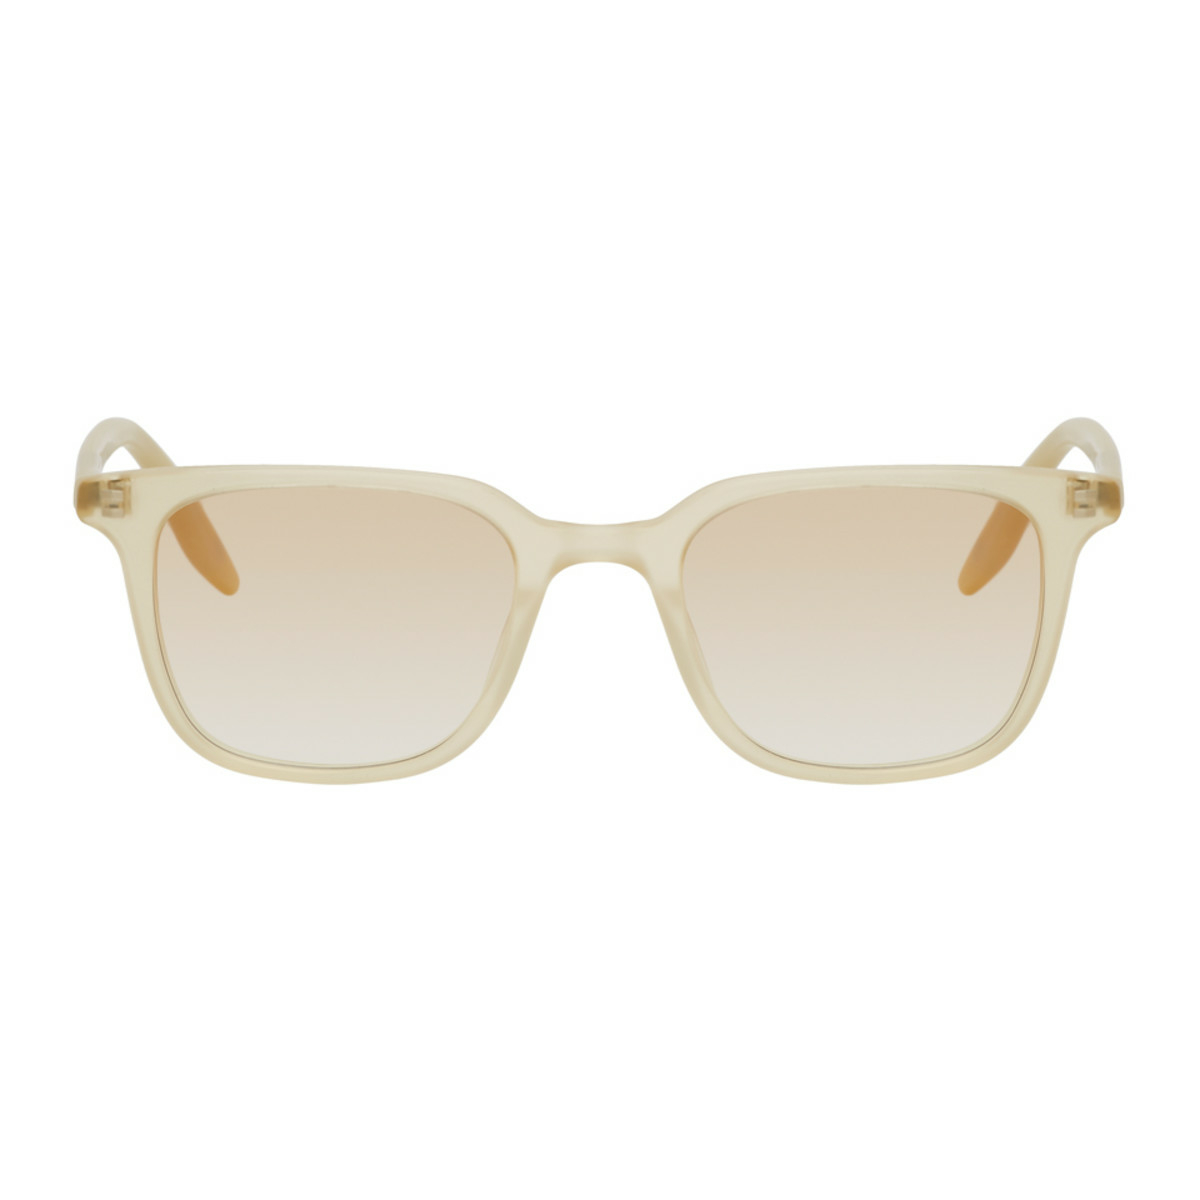 Men ACCESSORIES - GOOFASH - Mens SUNGLASSES